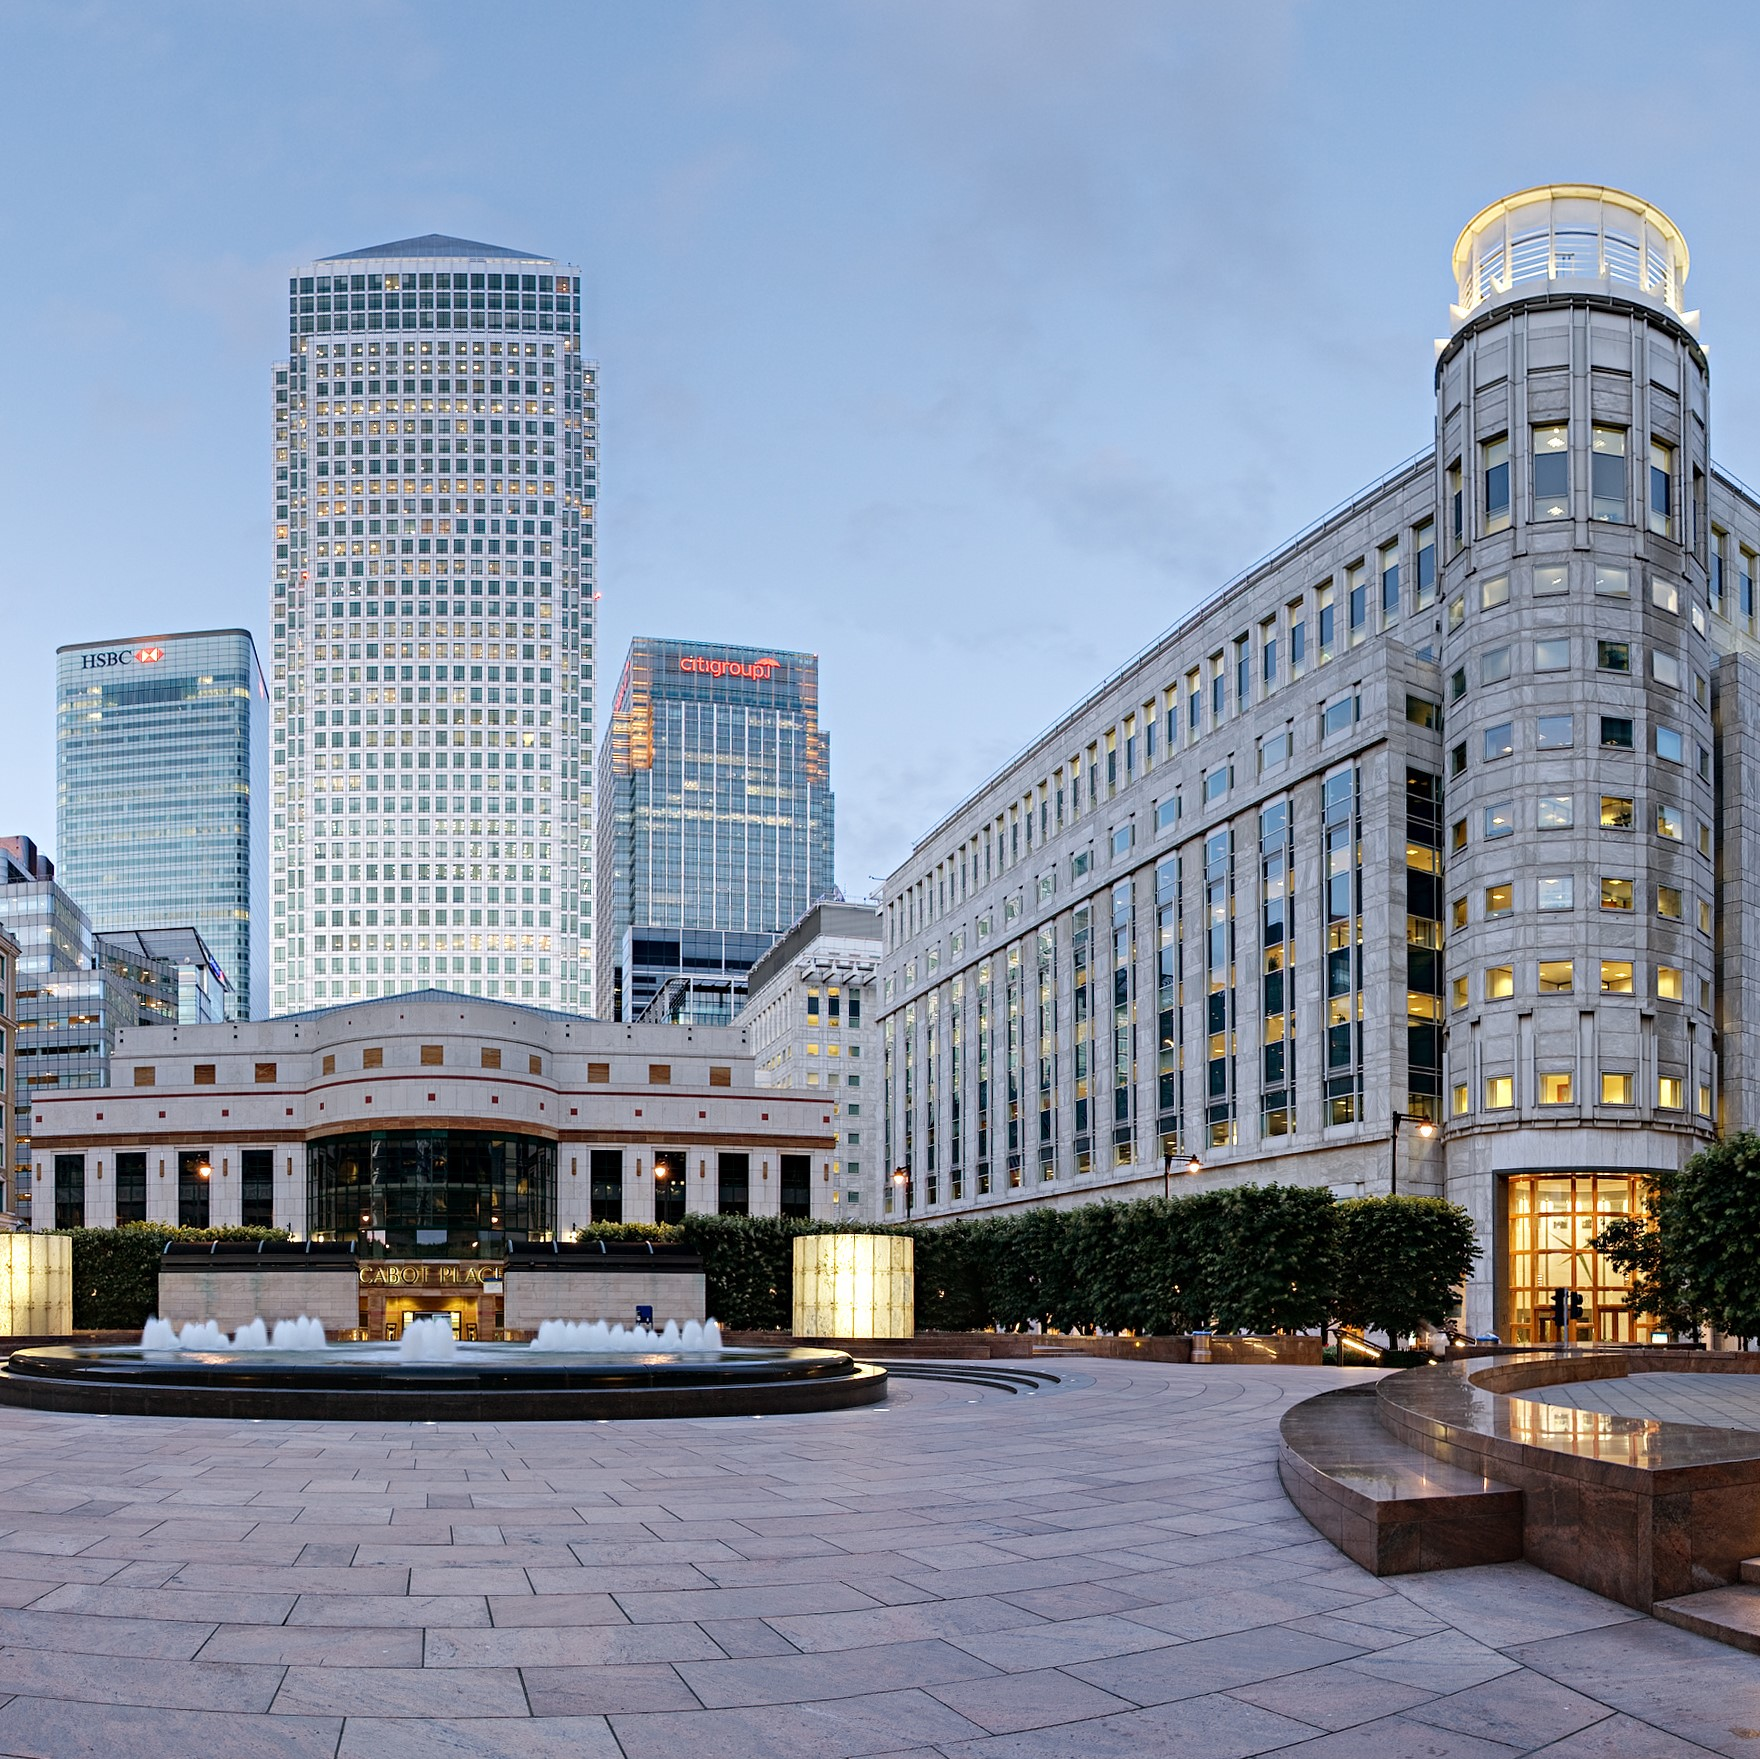 Canary Wharf, home of the UK financial services sector